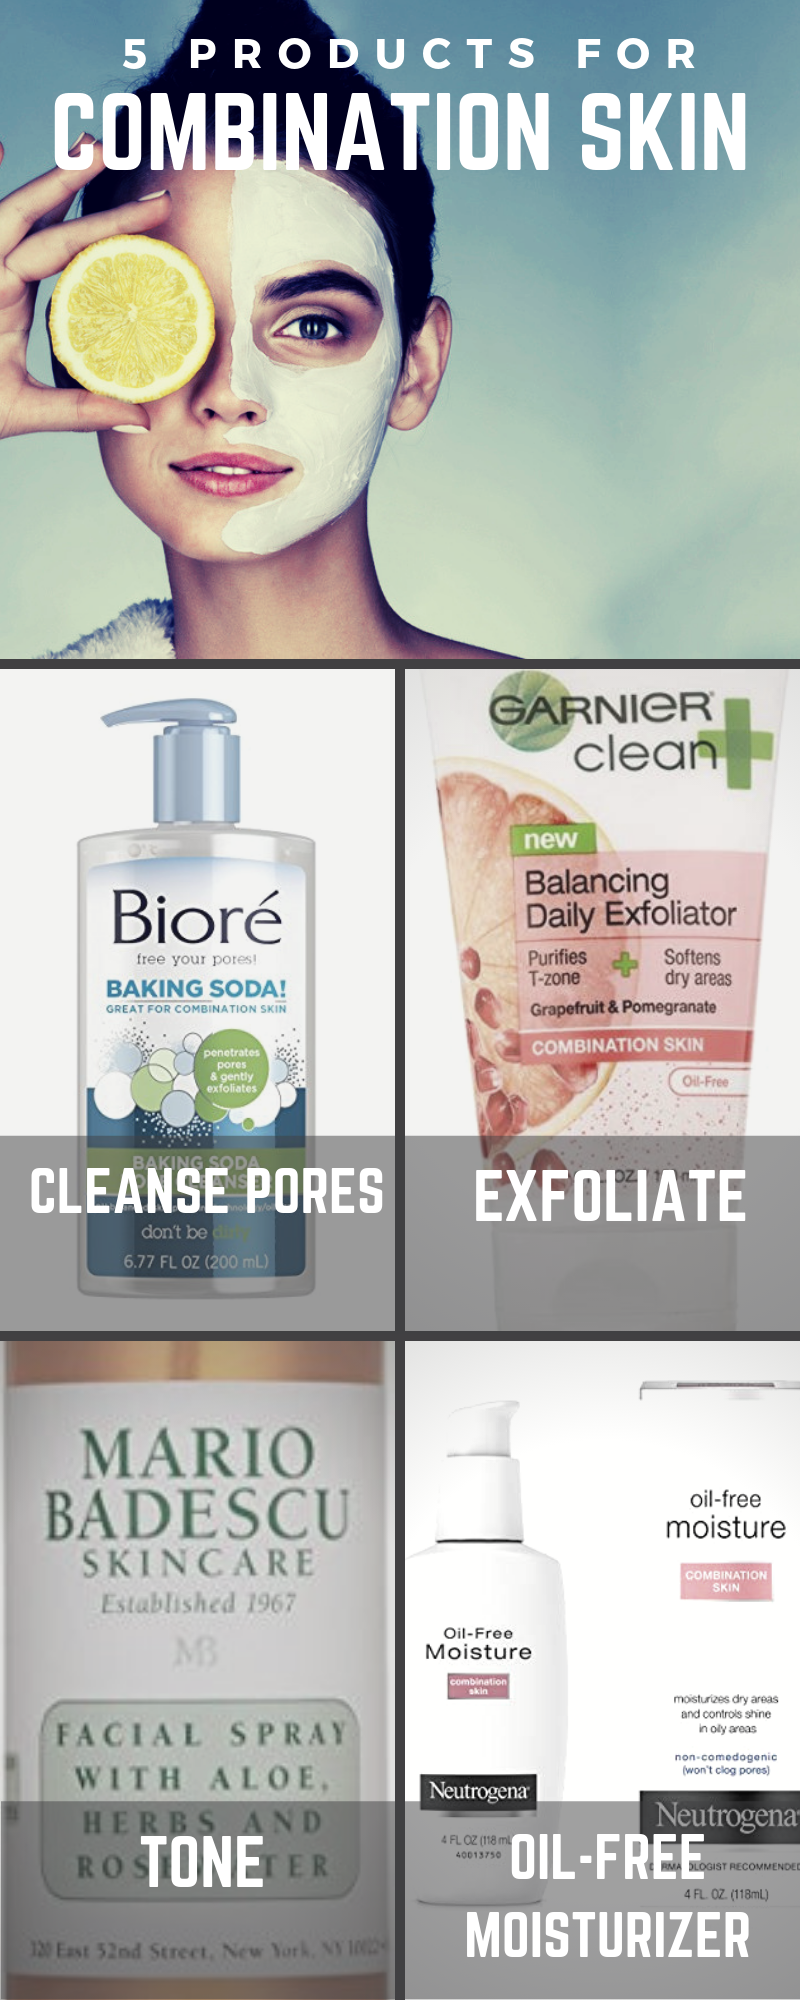 5 Products You Need For Your Combination Skin Care Routine Combination Skin Care Routine Combination Skin Care Skin Care Essentials